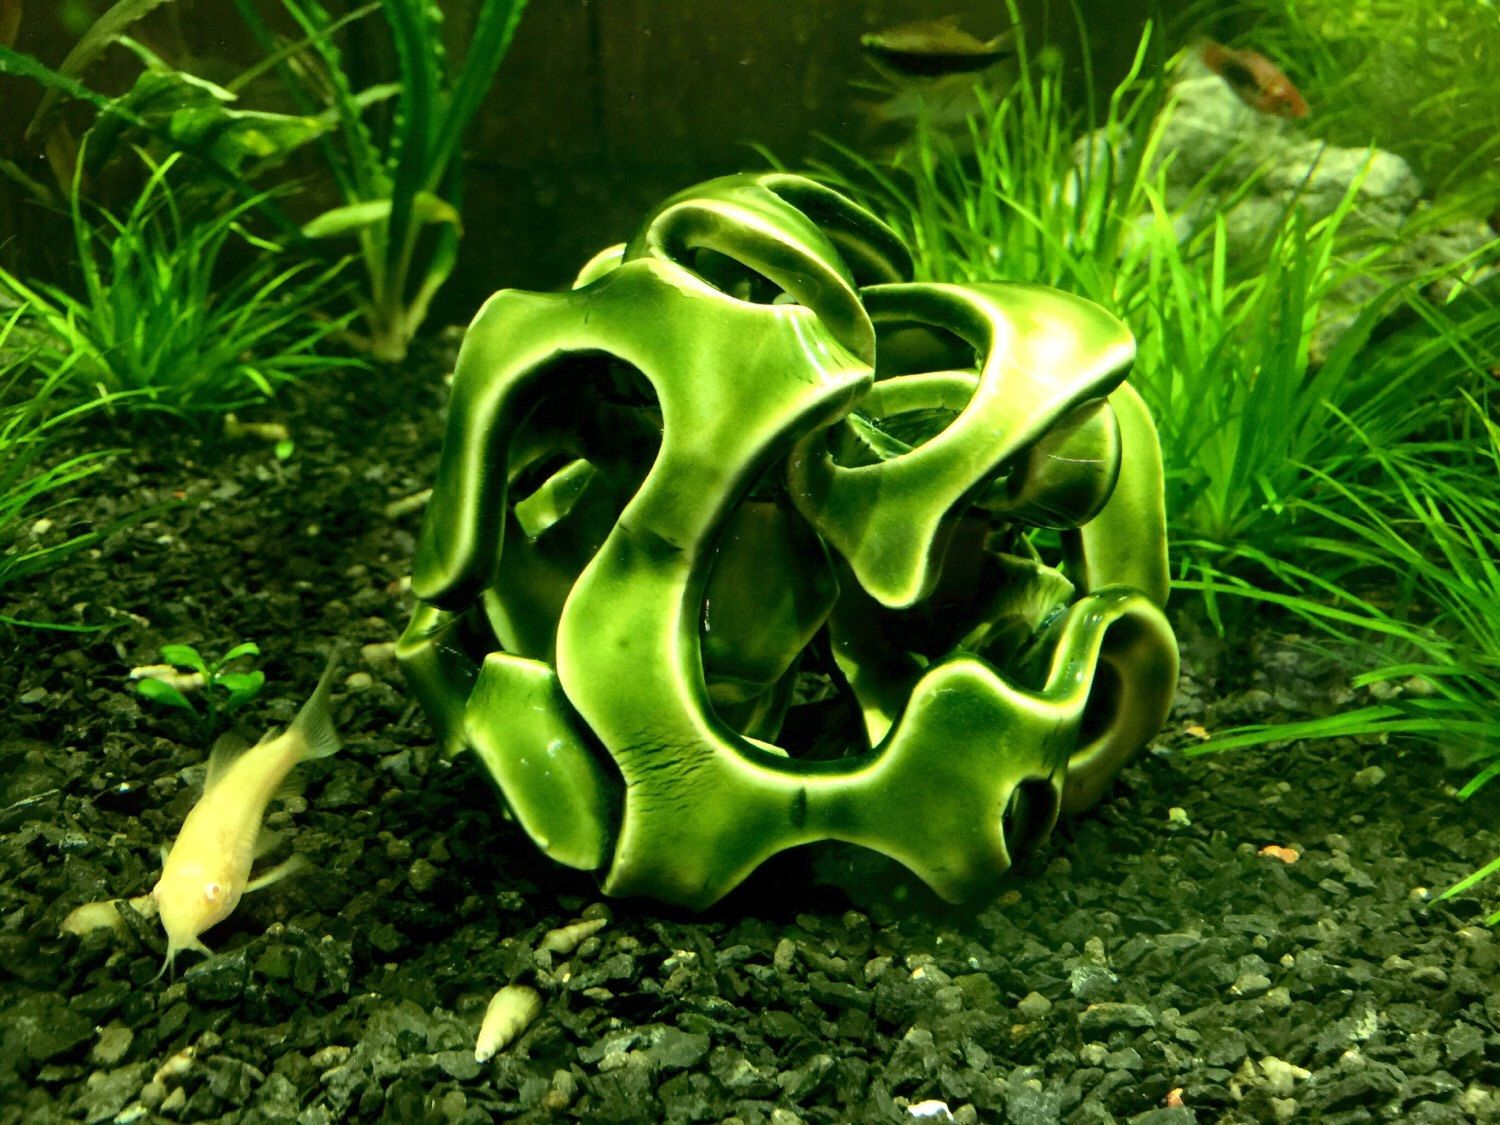 Aquarium fish tank online chennai - Aquarium Decoration Aquascape Feng Shui Ceramic Art Baby Fish Protector Fish Tank Ornament Fish Cave Rock By Fishluv